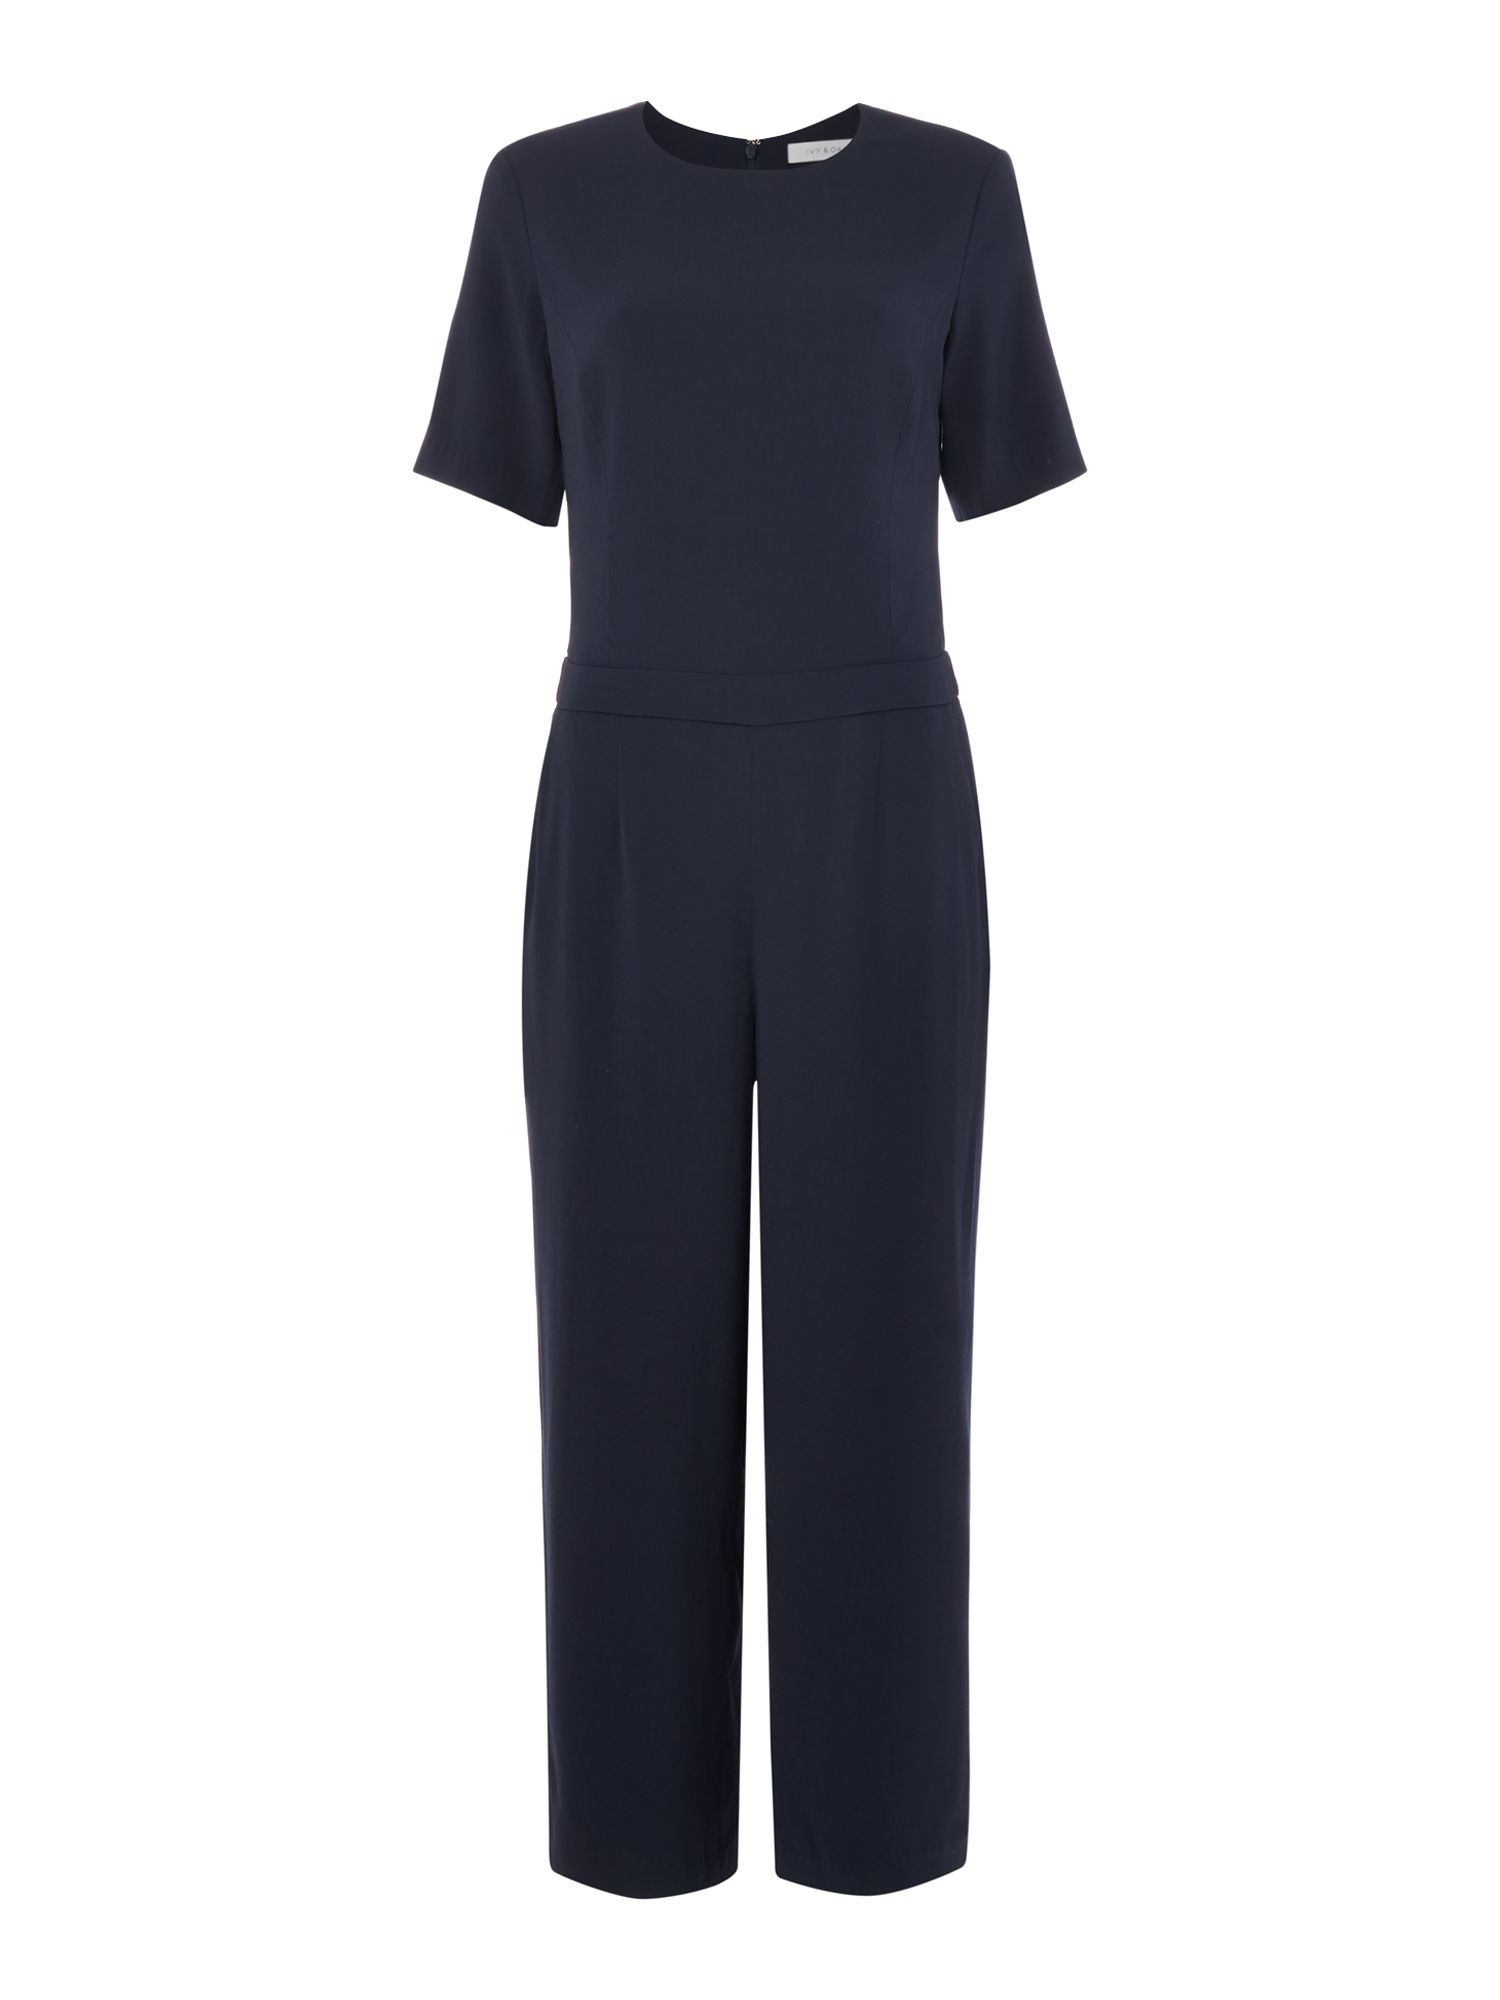 IVY & OAK Ivy & Oak Jumpsuit with 3/4 sleeves and culotte trousers, Midnight Blue